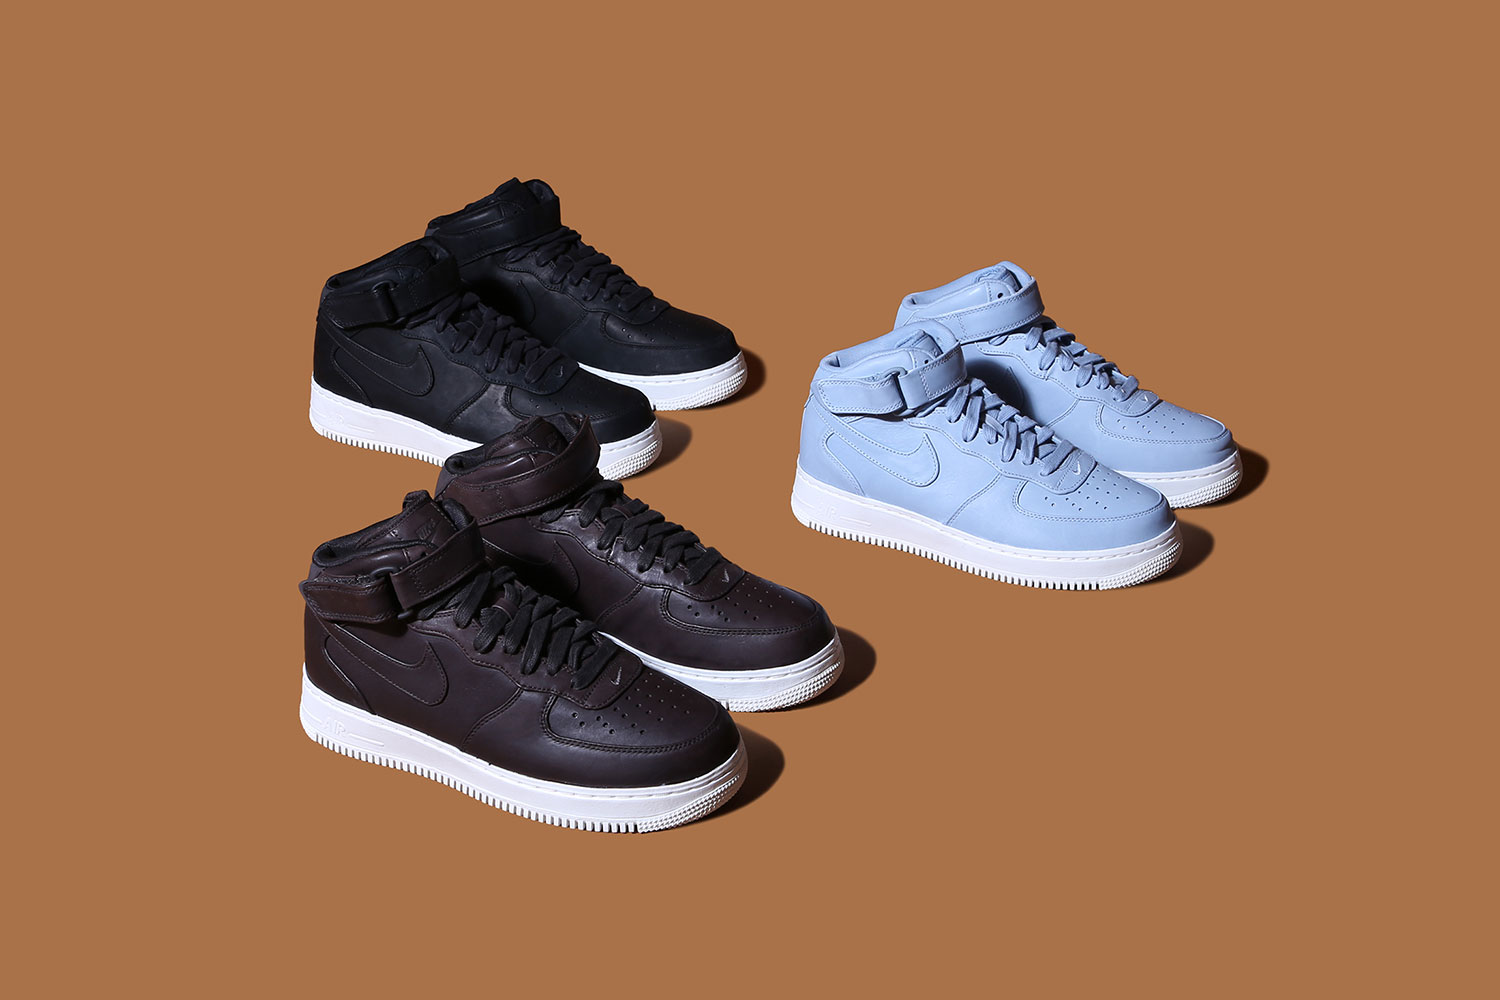 NikeLab Drops a Trio of New Air Force 1 Colorways